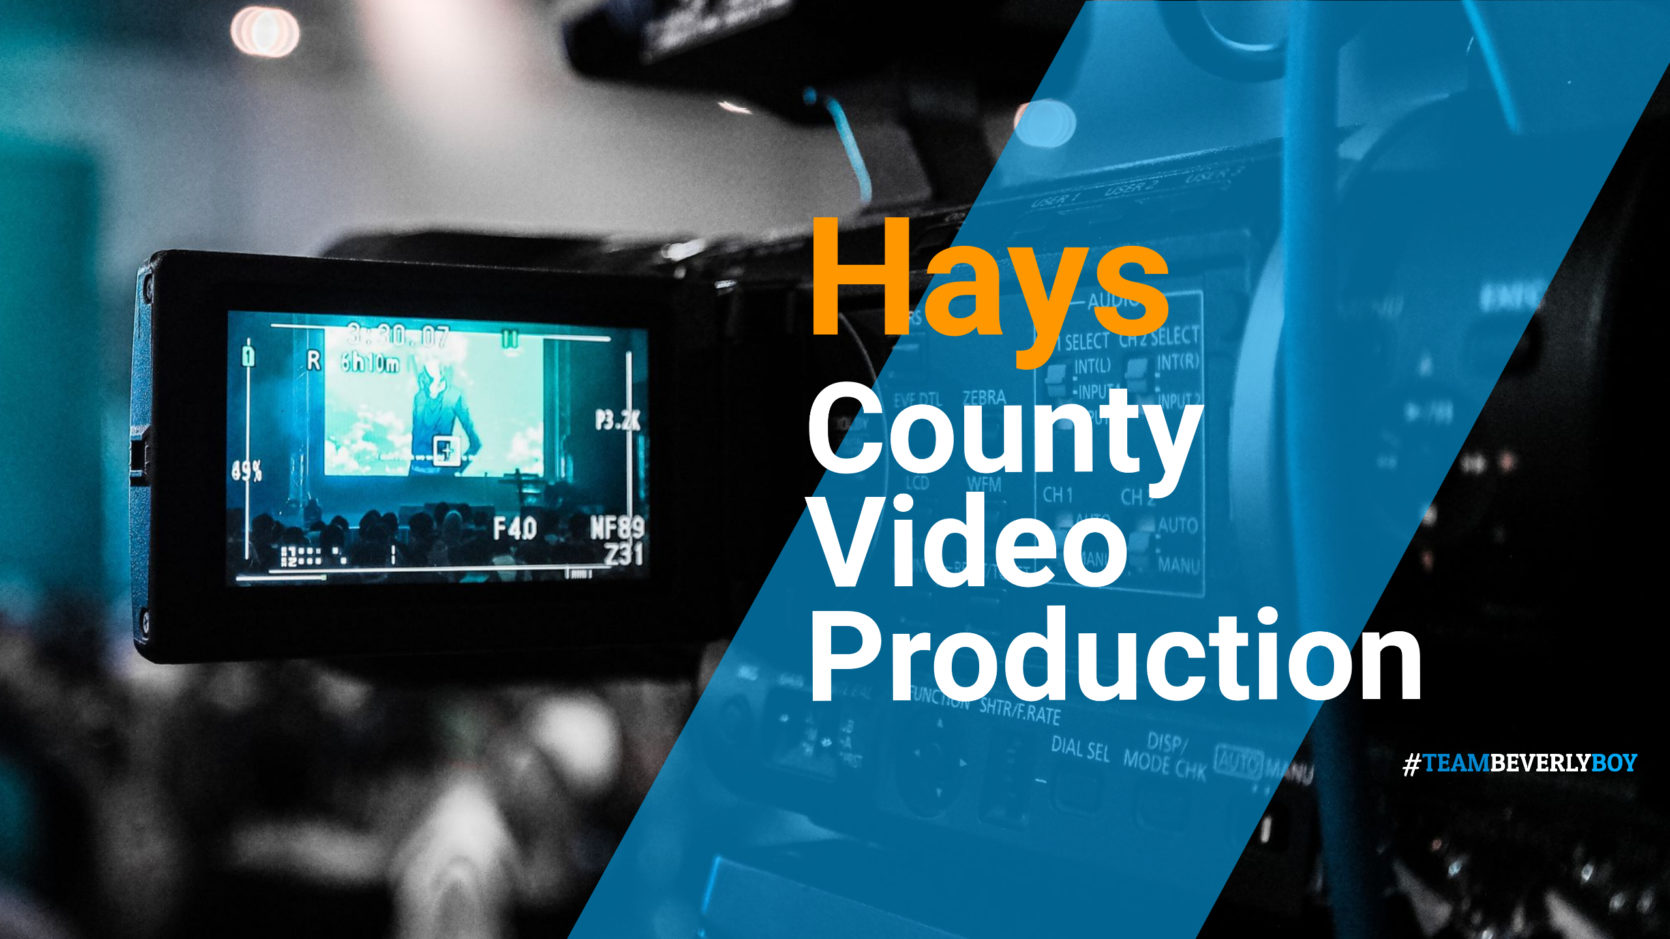 Hays county Video Production